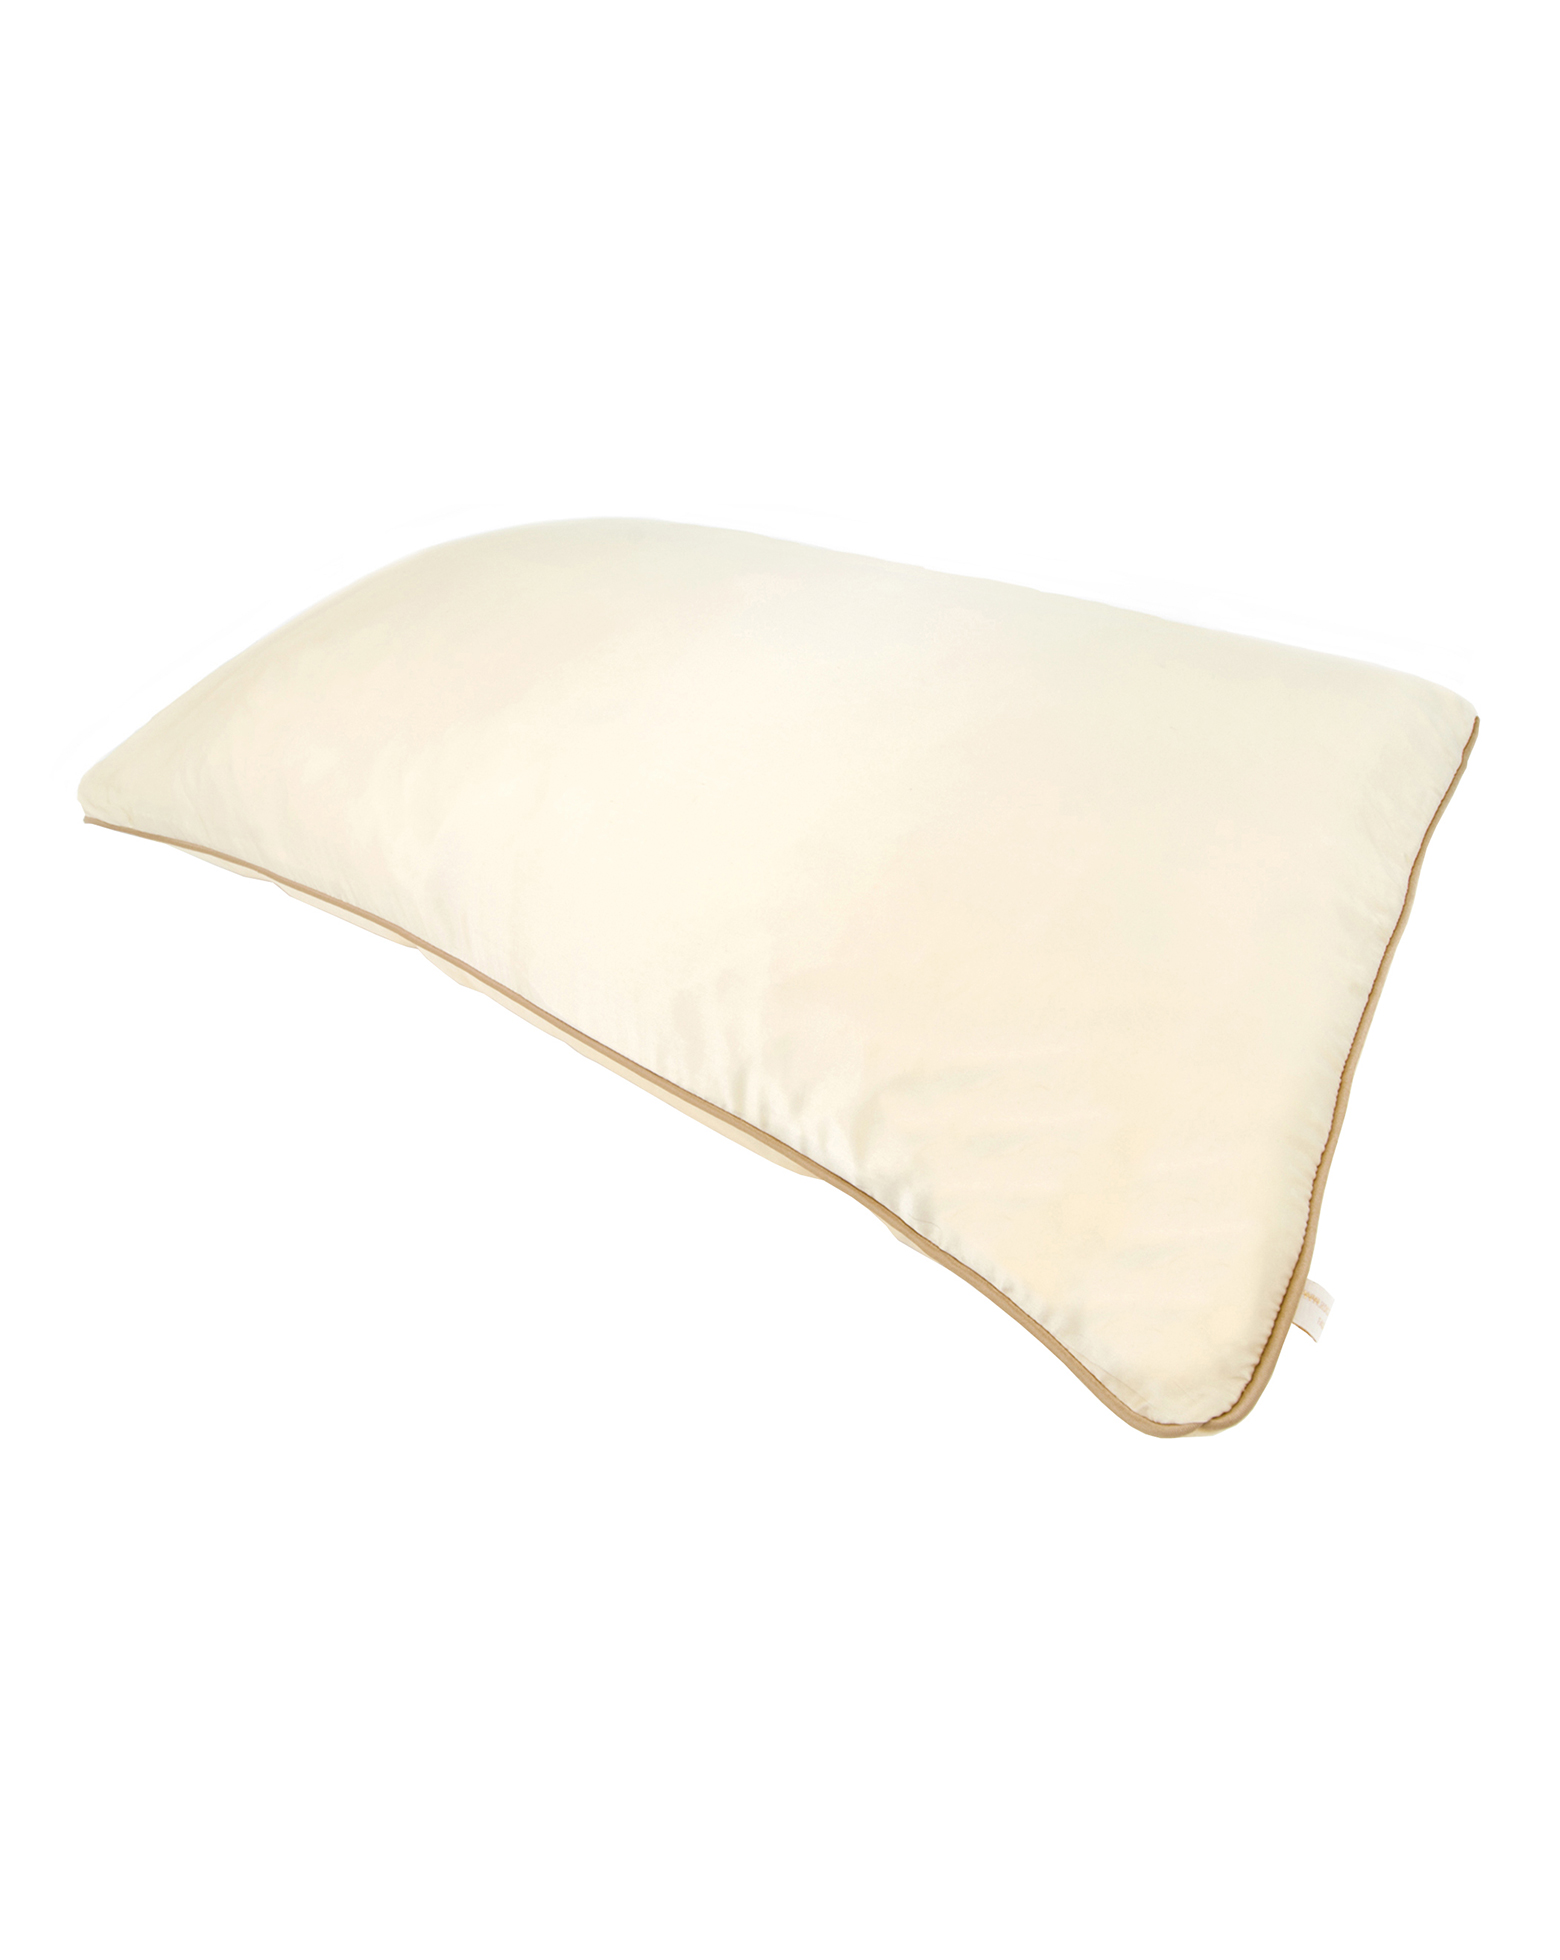 ivory facial en bear silk queen pillow beauty size natural pillowcase for hair alaska